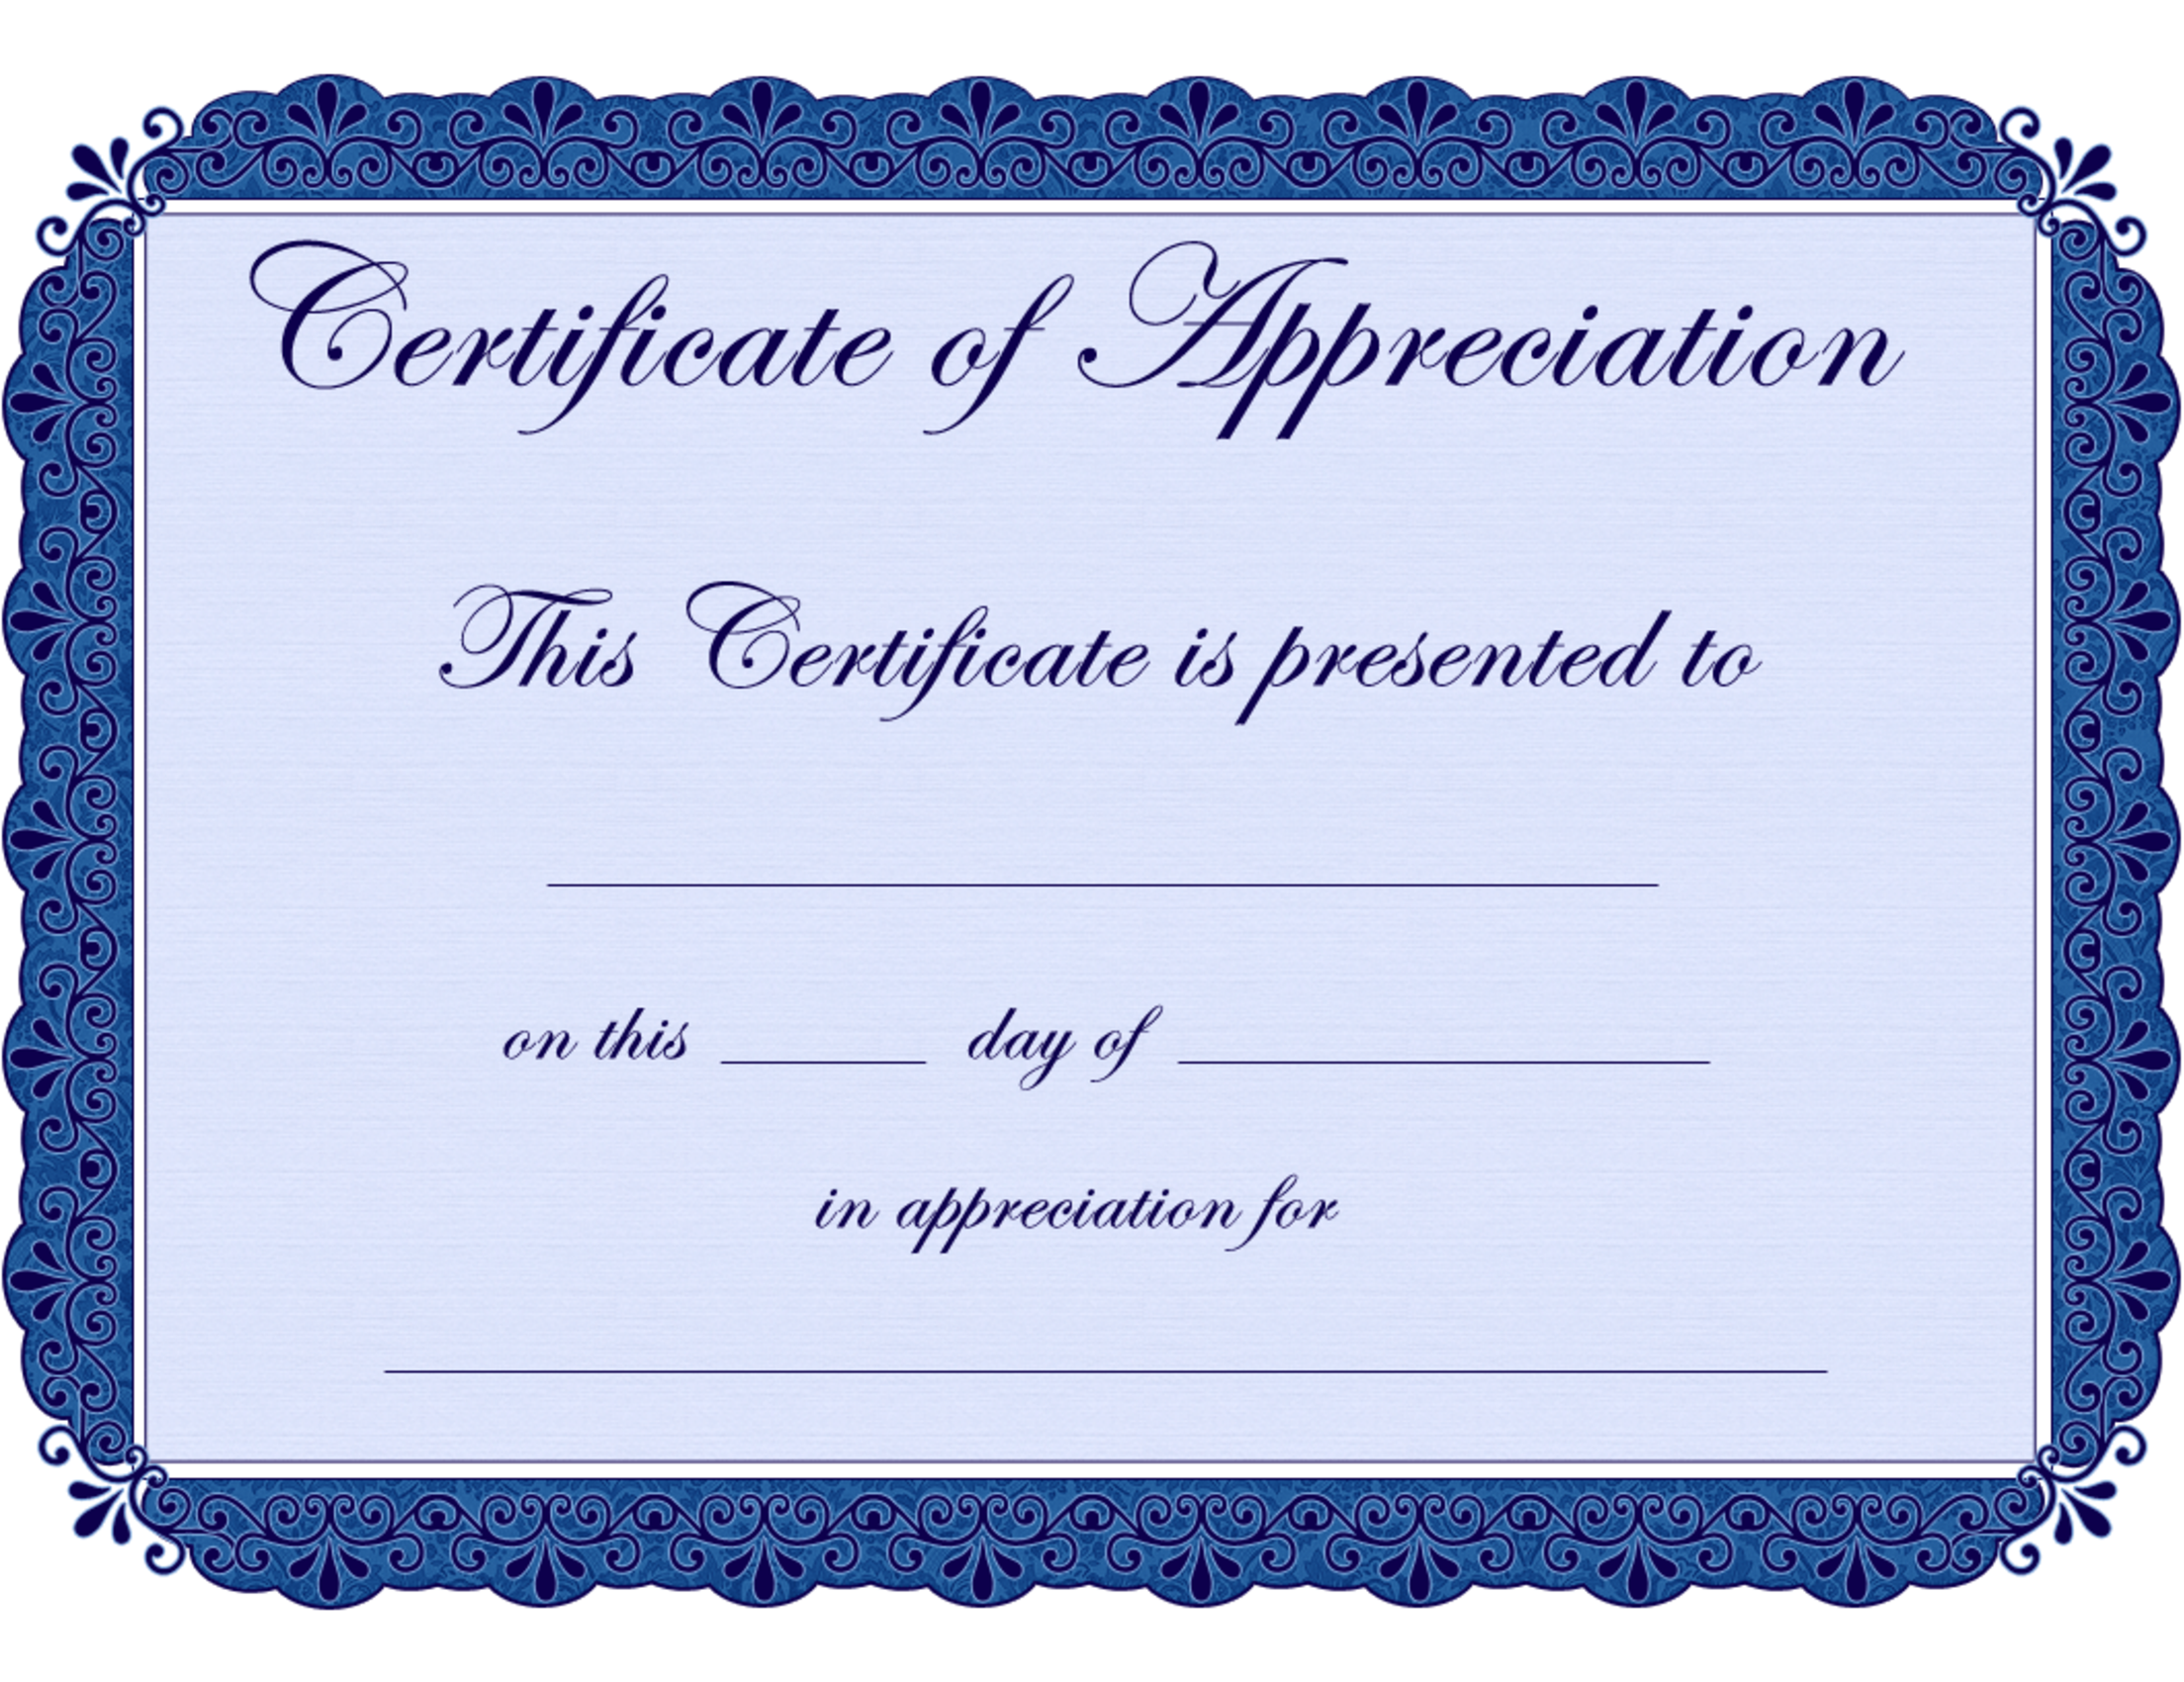 Free Printable Certificates Certificate Of Appreciation Certificate ... |  Certificate Of Appreciation | Pinterest | Free Printable Certificates, ...  Employee Appreciation Certificate Template Free